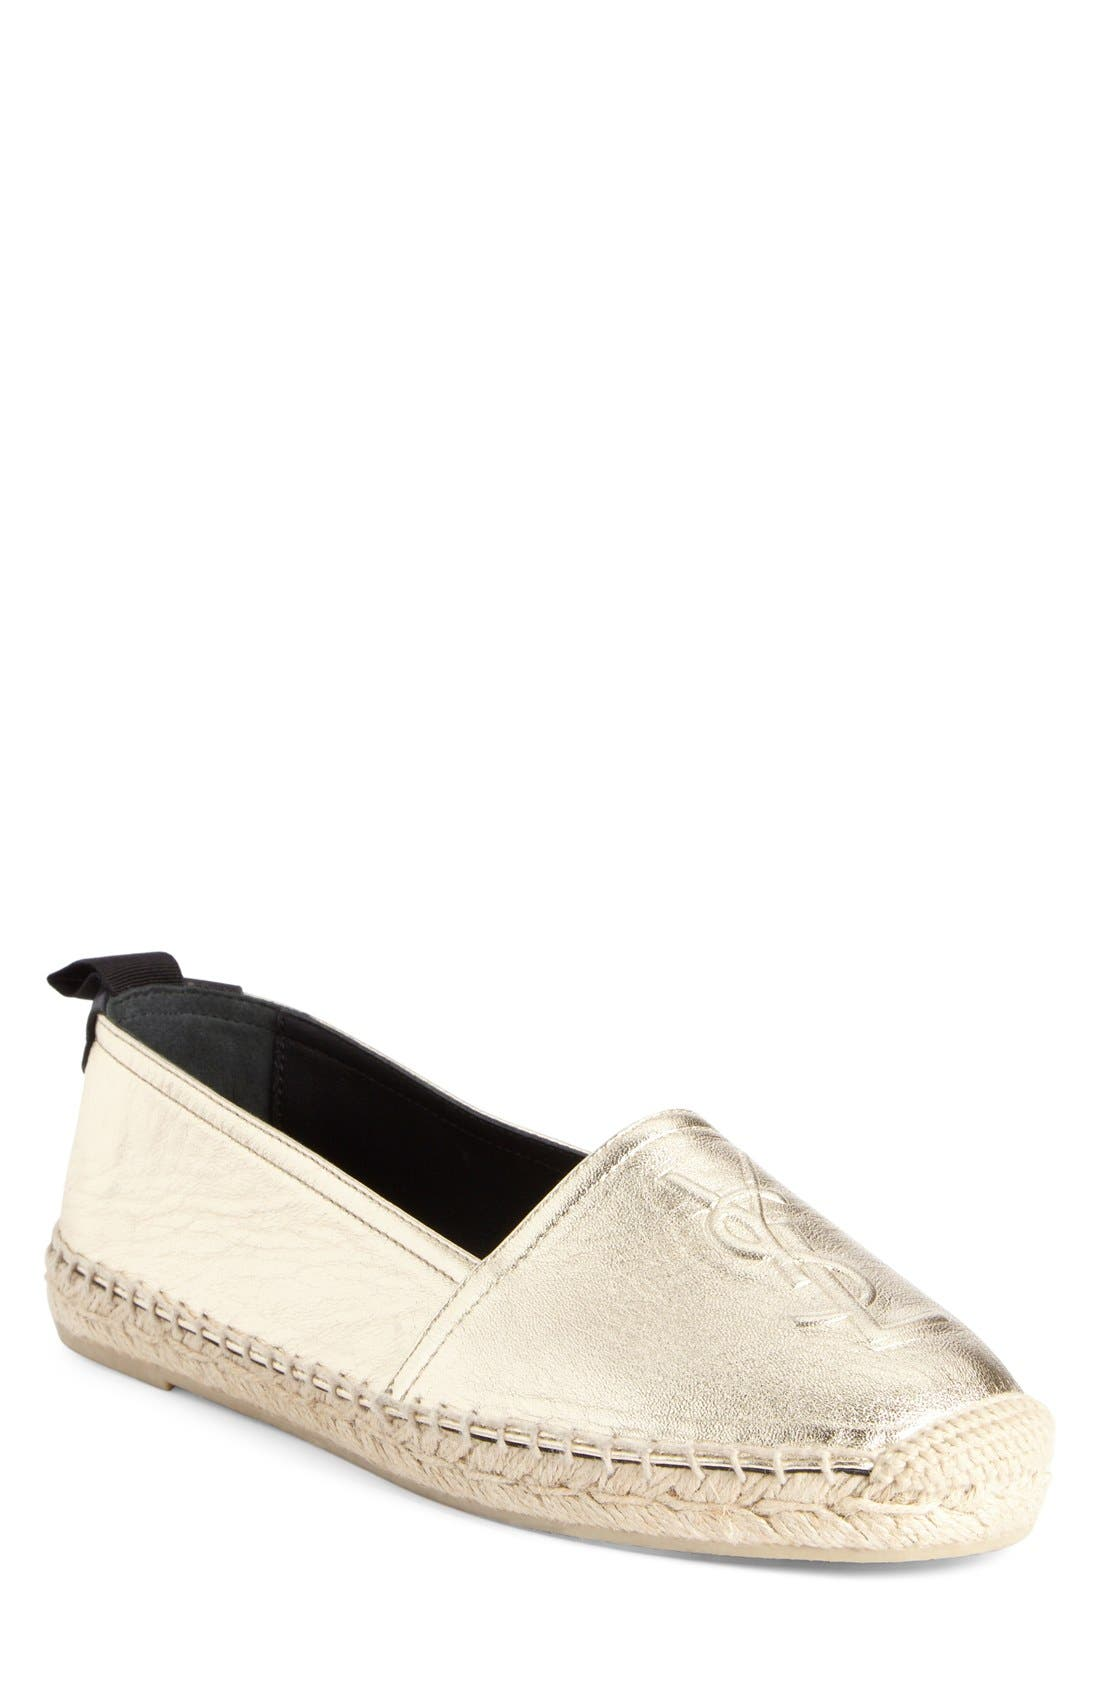 Main Image - Saint Laurent Logo Espadrille (Women)